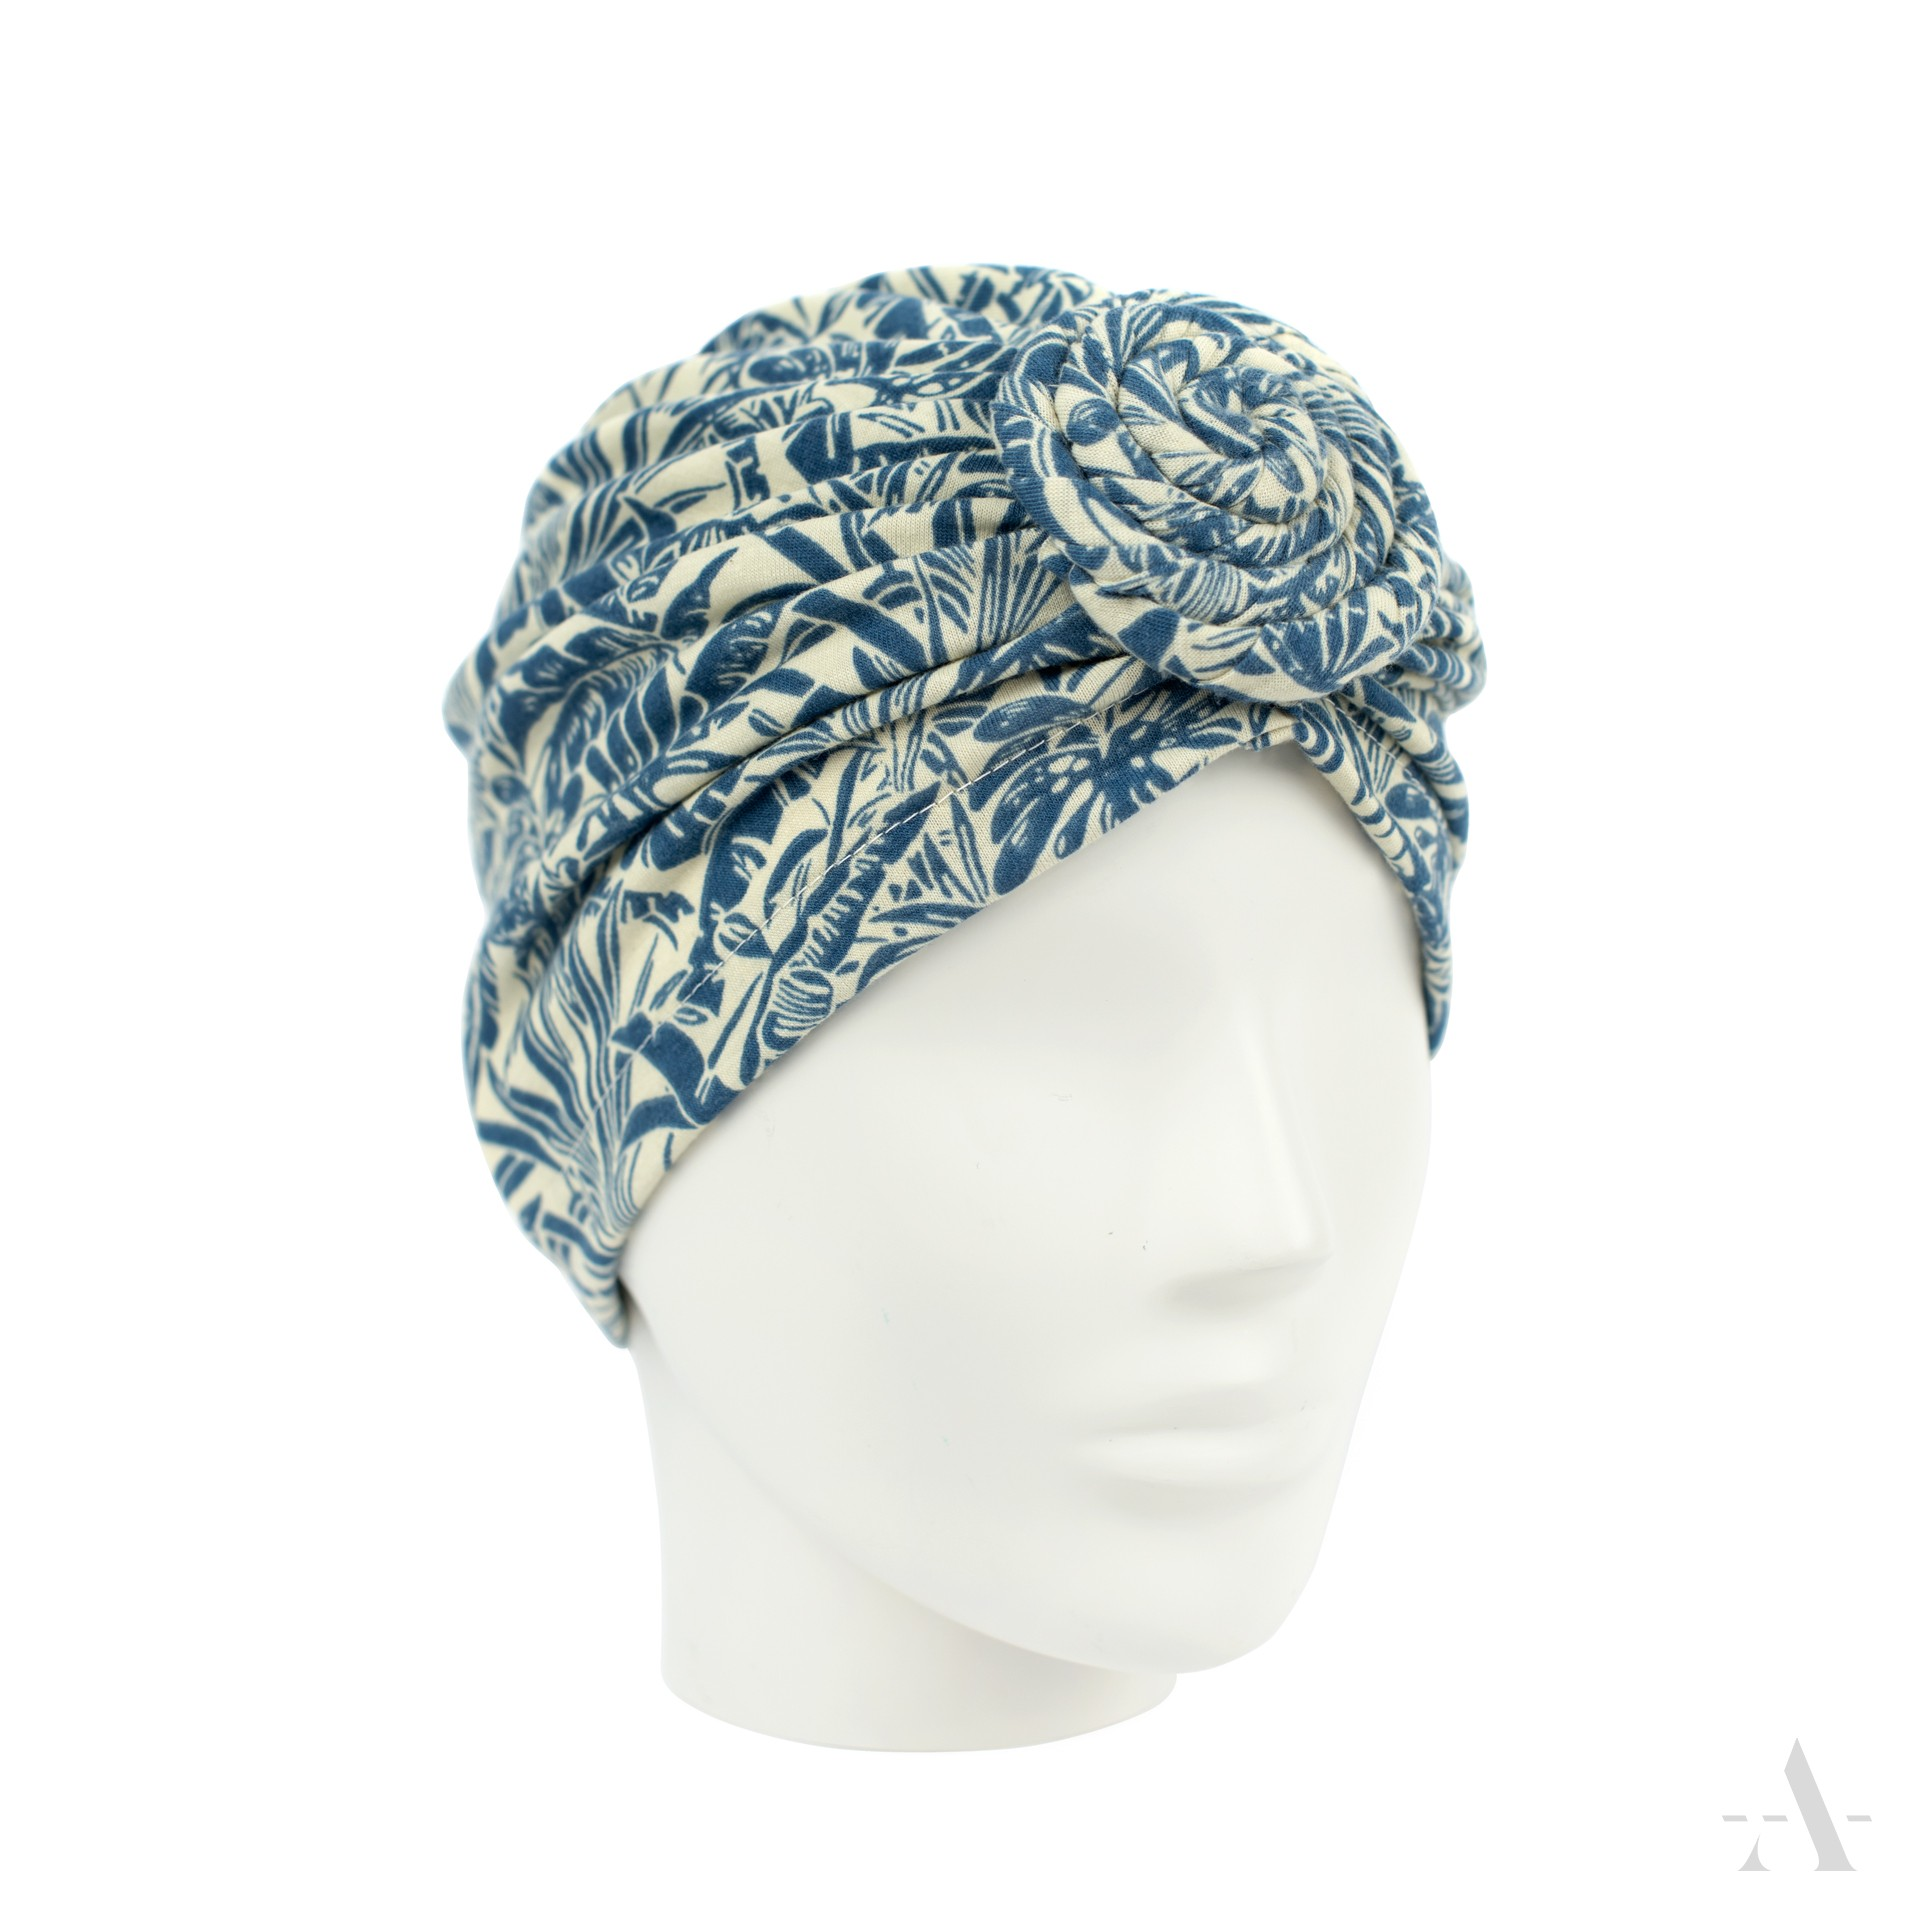 Art of Polo dámsky turban cz20206-1